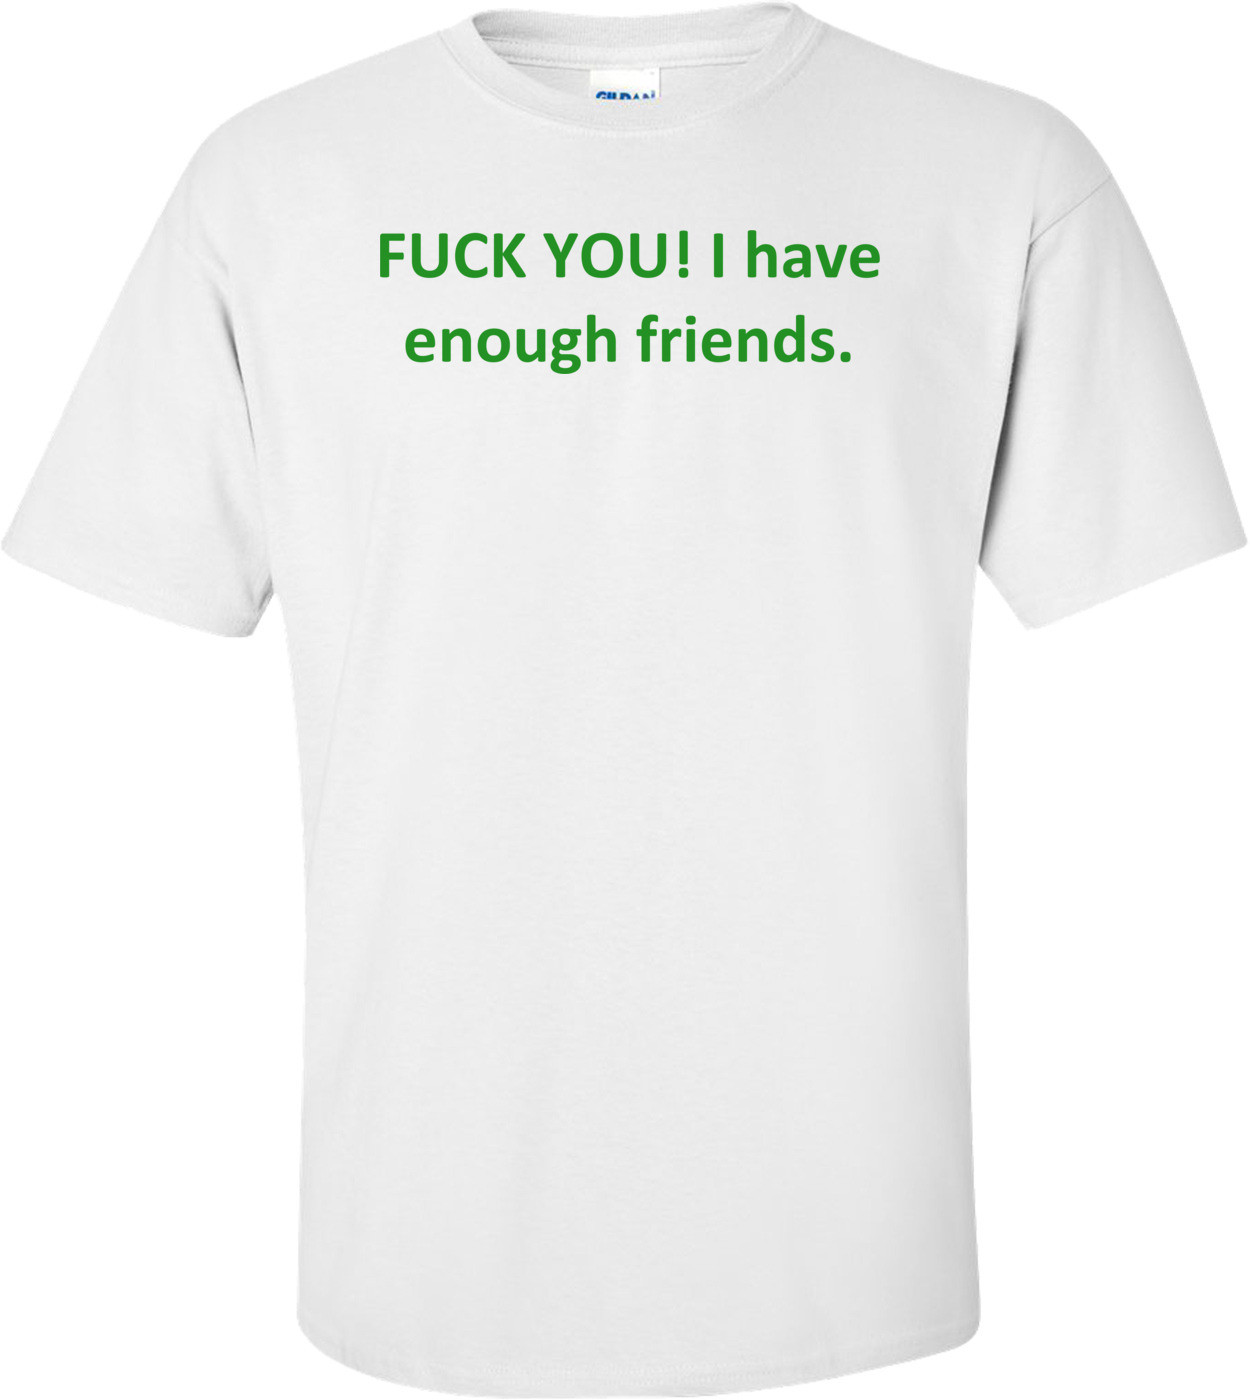 FUCK YOU! I have enough friends. Shirt